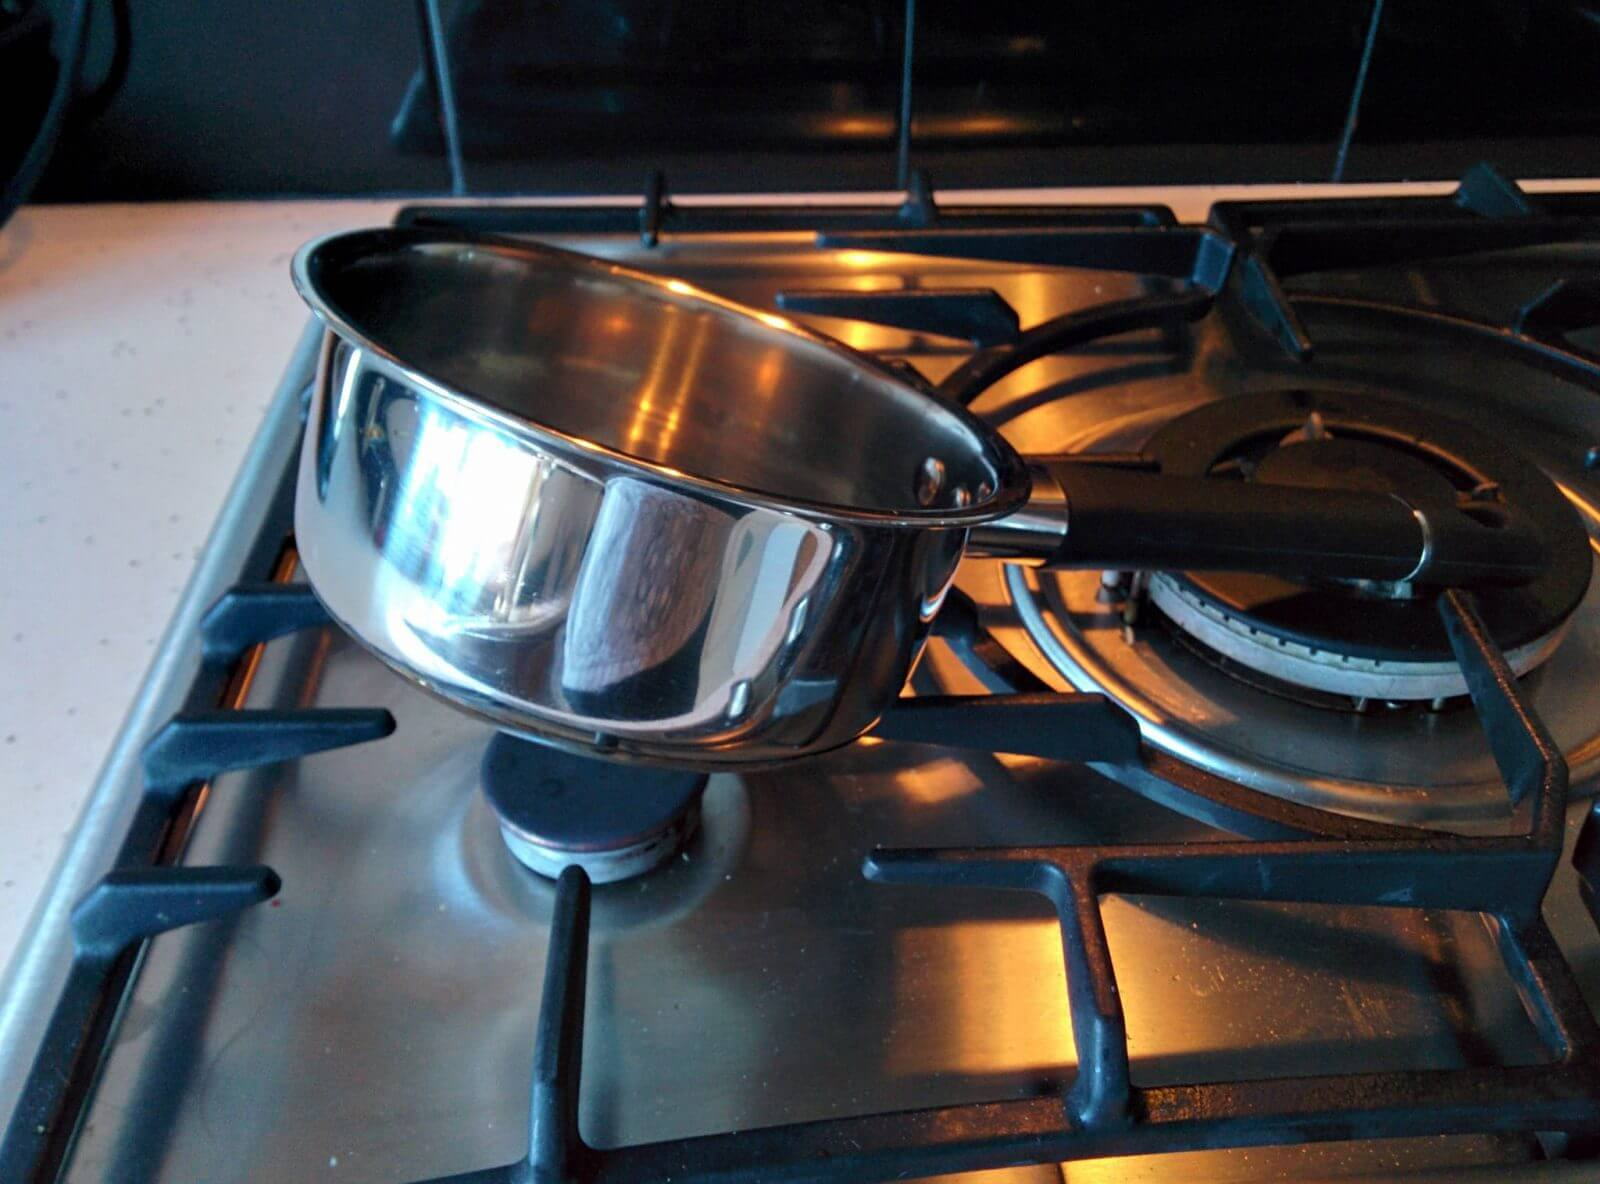 15 Hilarious Pictures Reveal How Life Can Get Unfair Sometimes - So you are in the mood to cook something. But no you can't, because the pan is not in the mood, it just wants to relax.